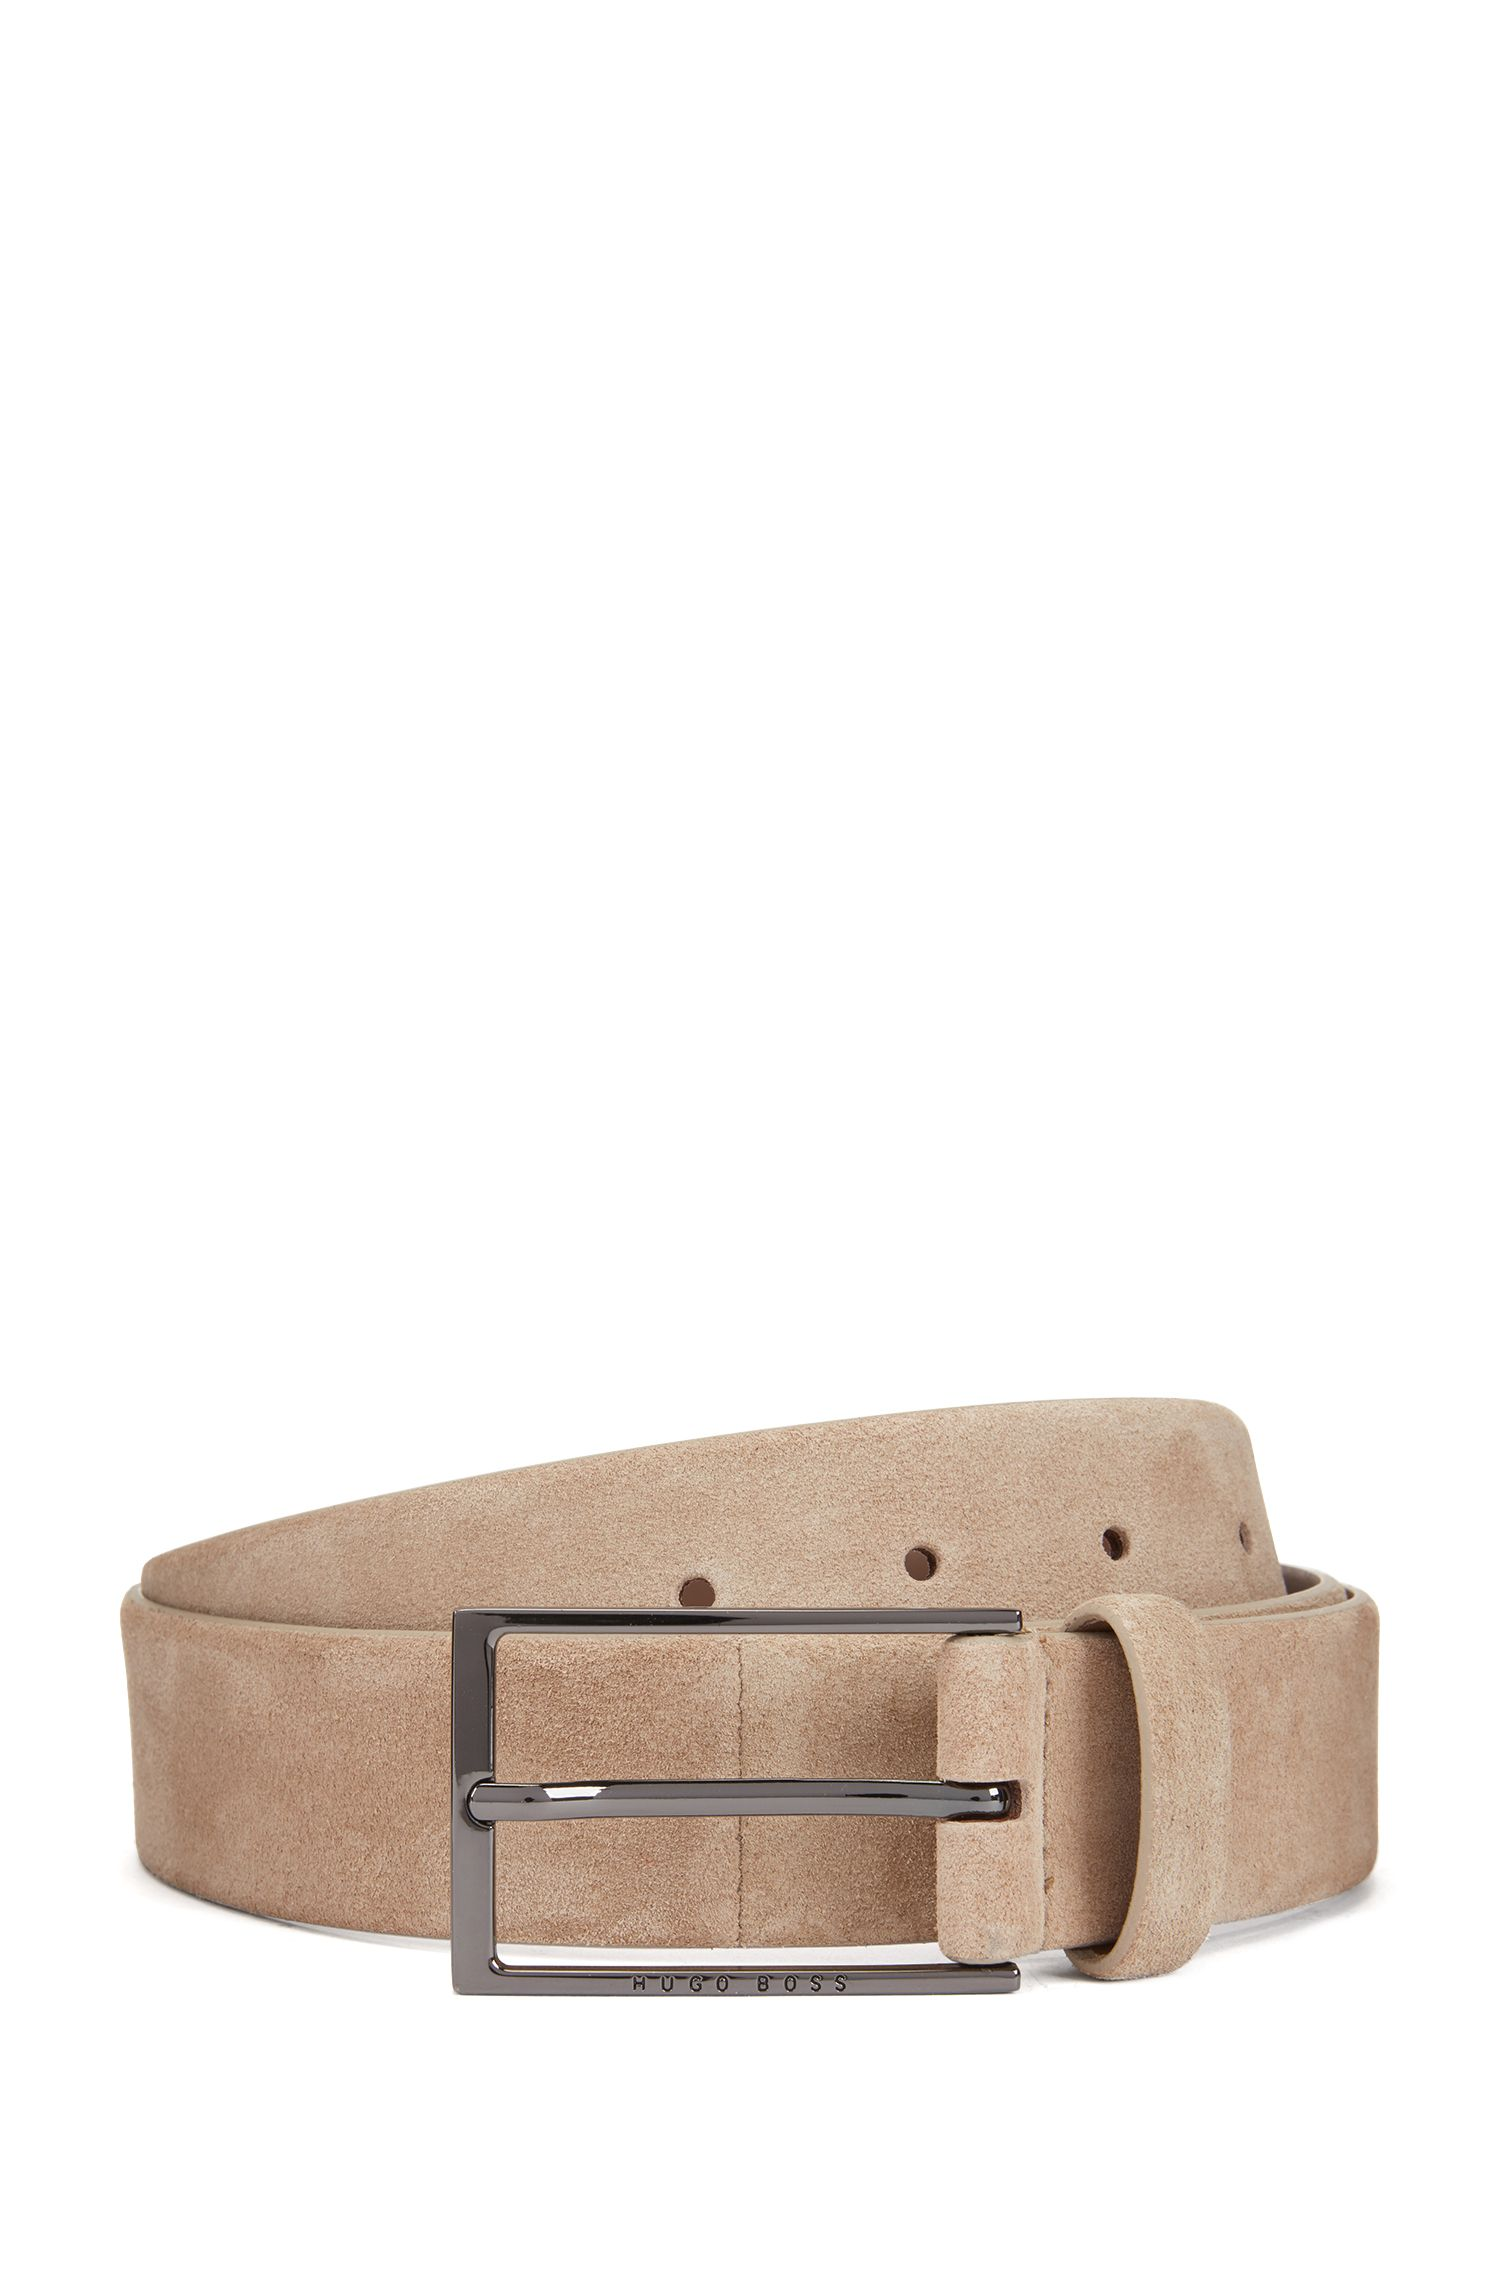 Soft suede leather belt with polished gunmetal pin buckle, Light Beige